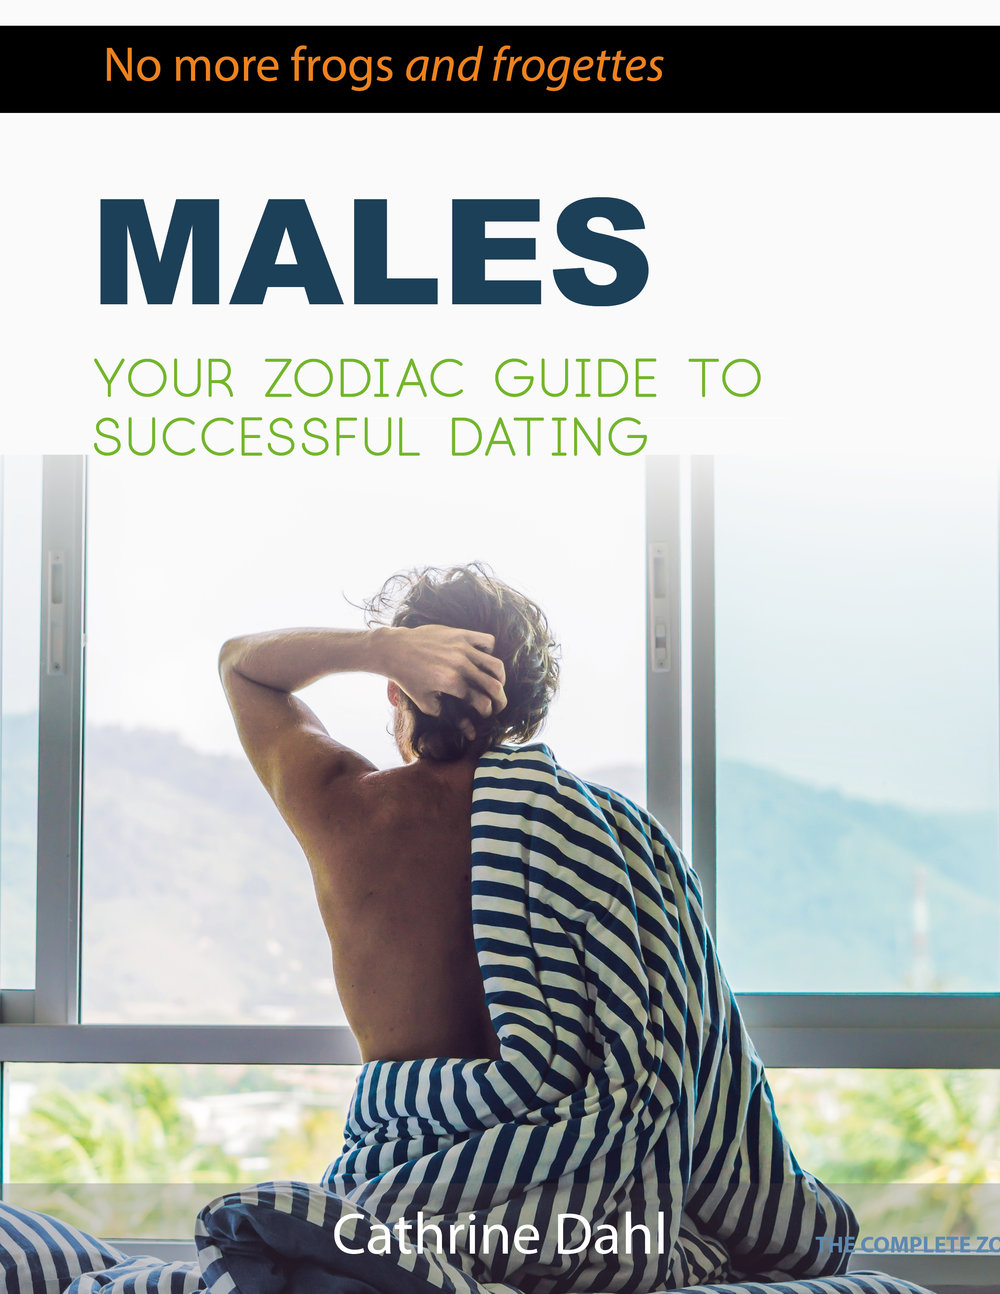 Your guide toThe Males - Silent and mysterious or outgoing and energitic...? There is much more to the man than what meets the eye.